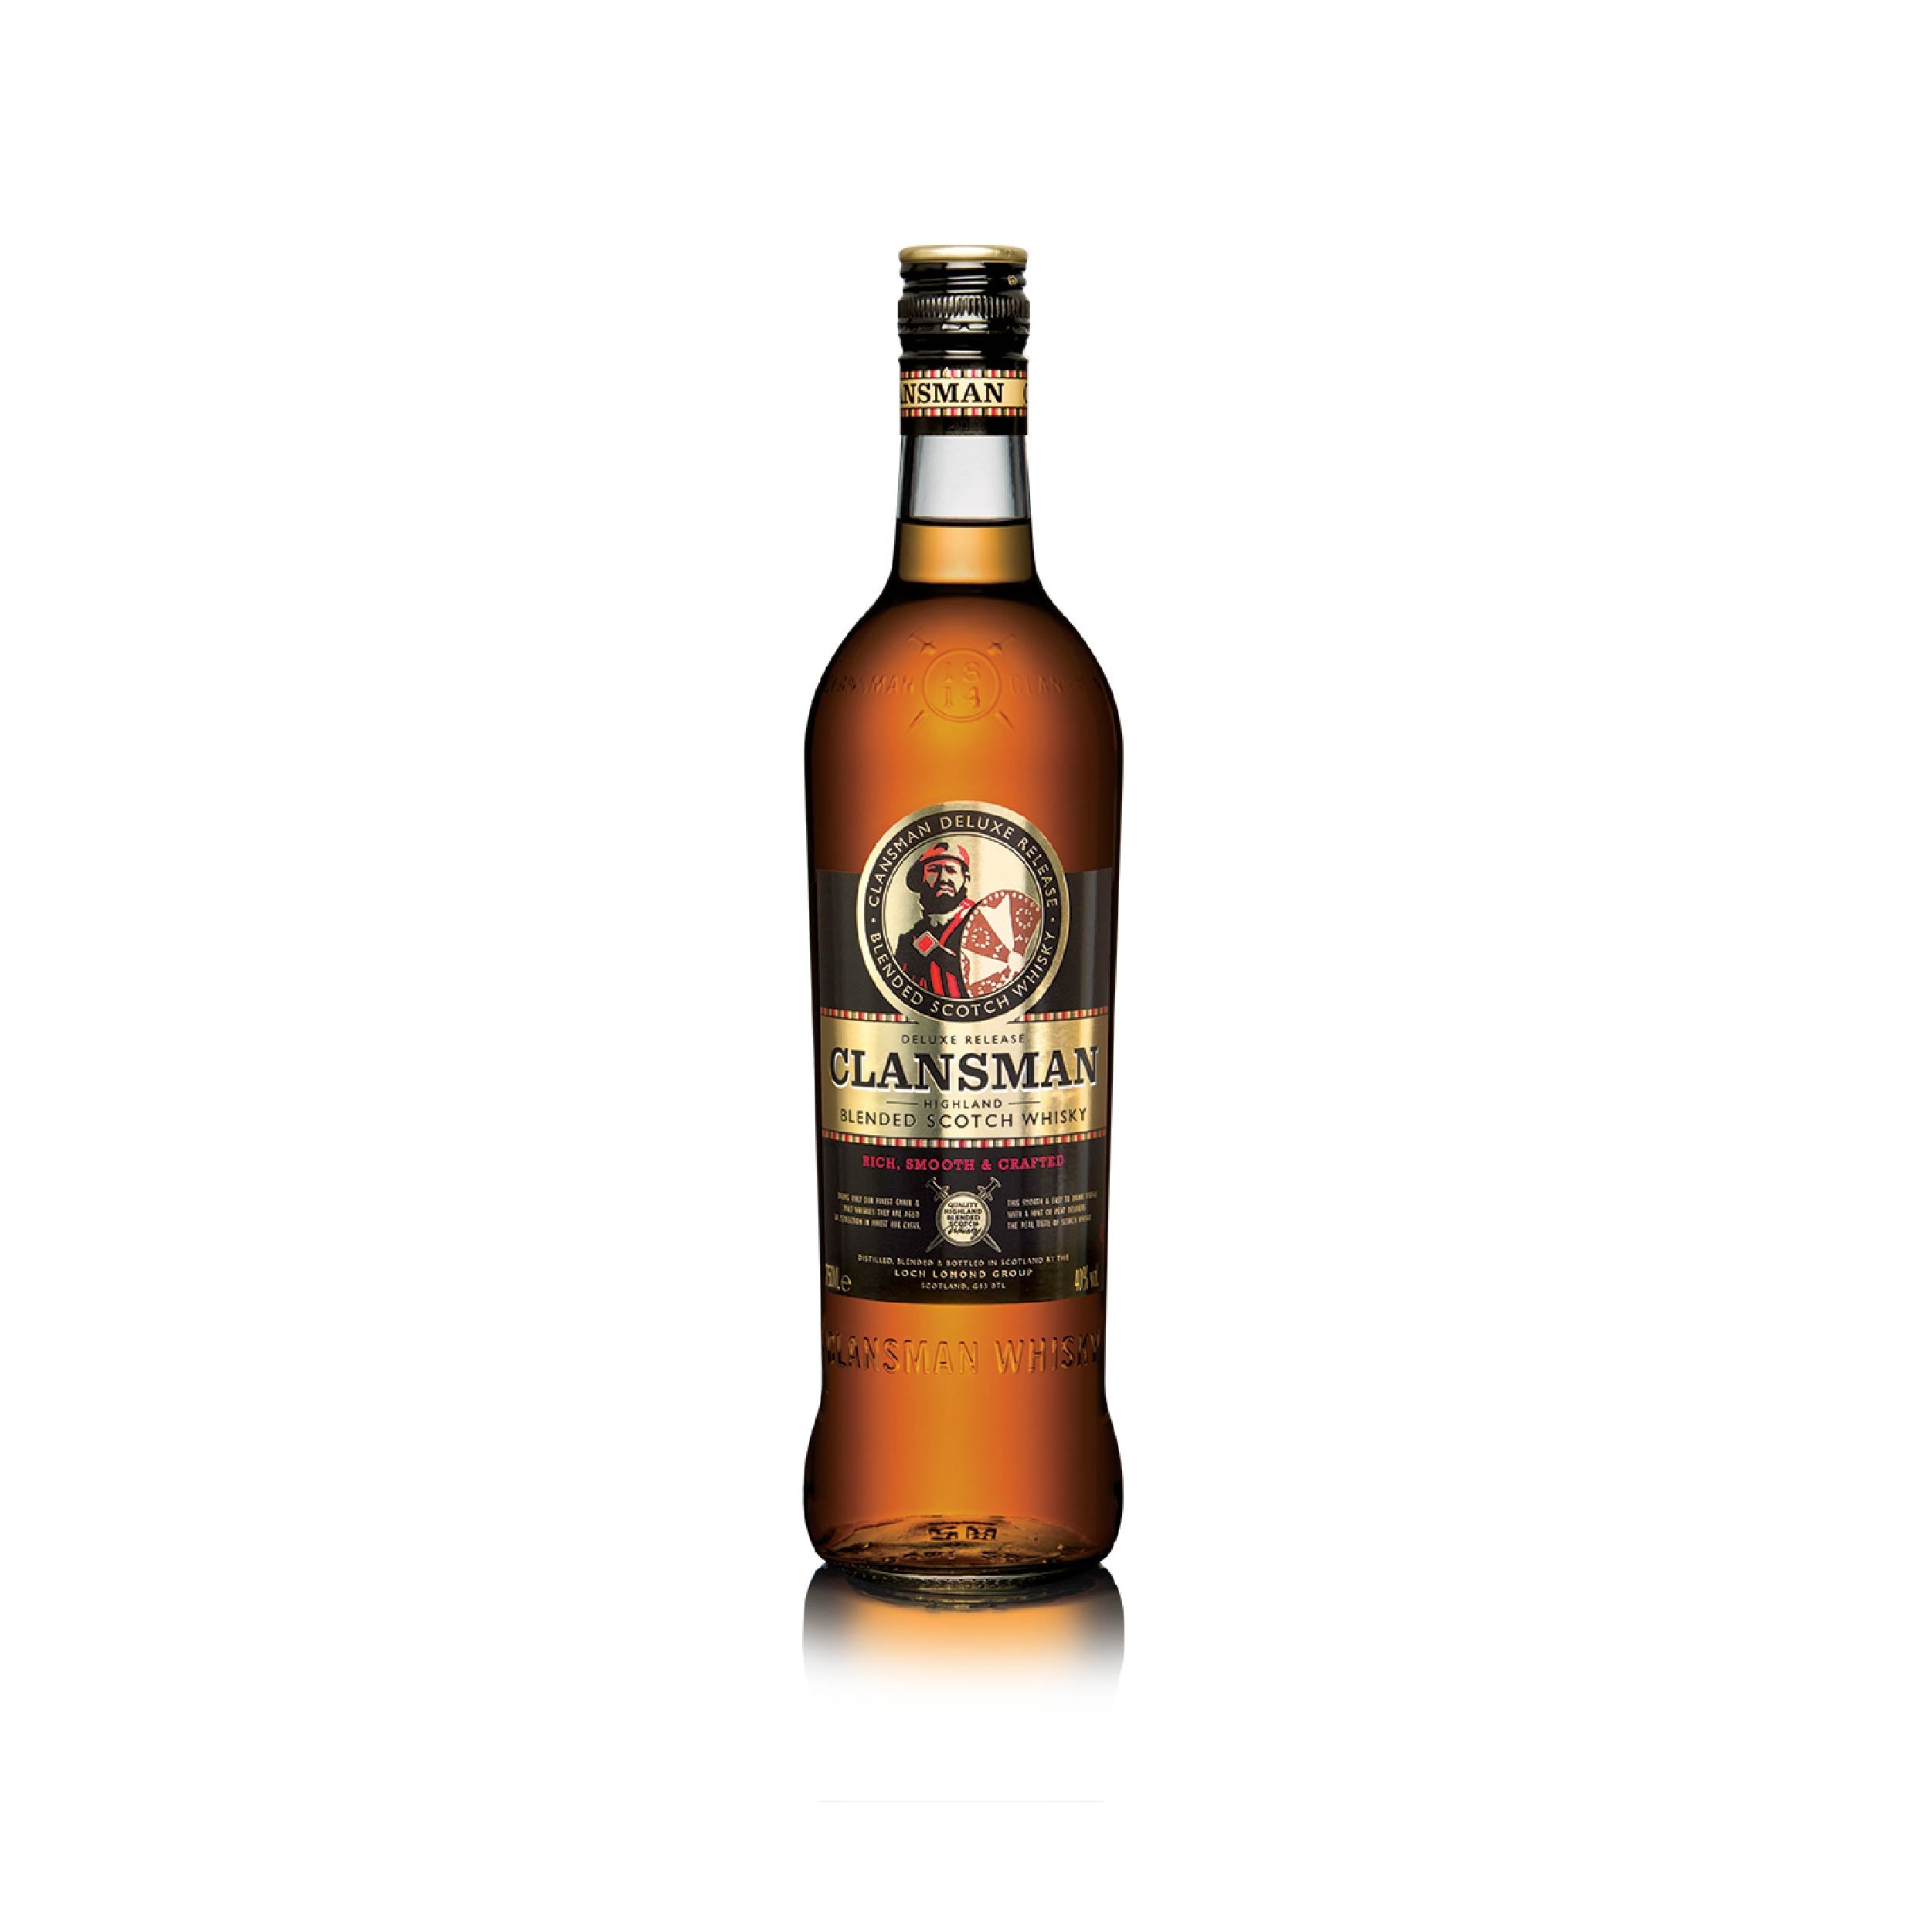 Clansman Blended Scotch Whisky 750ml